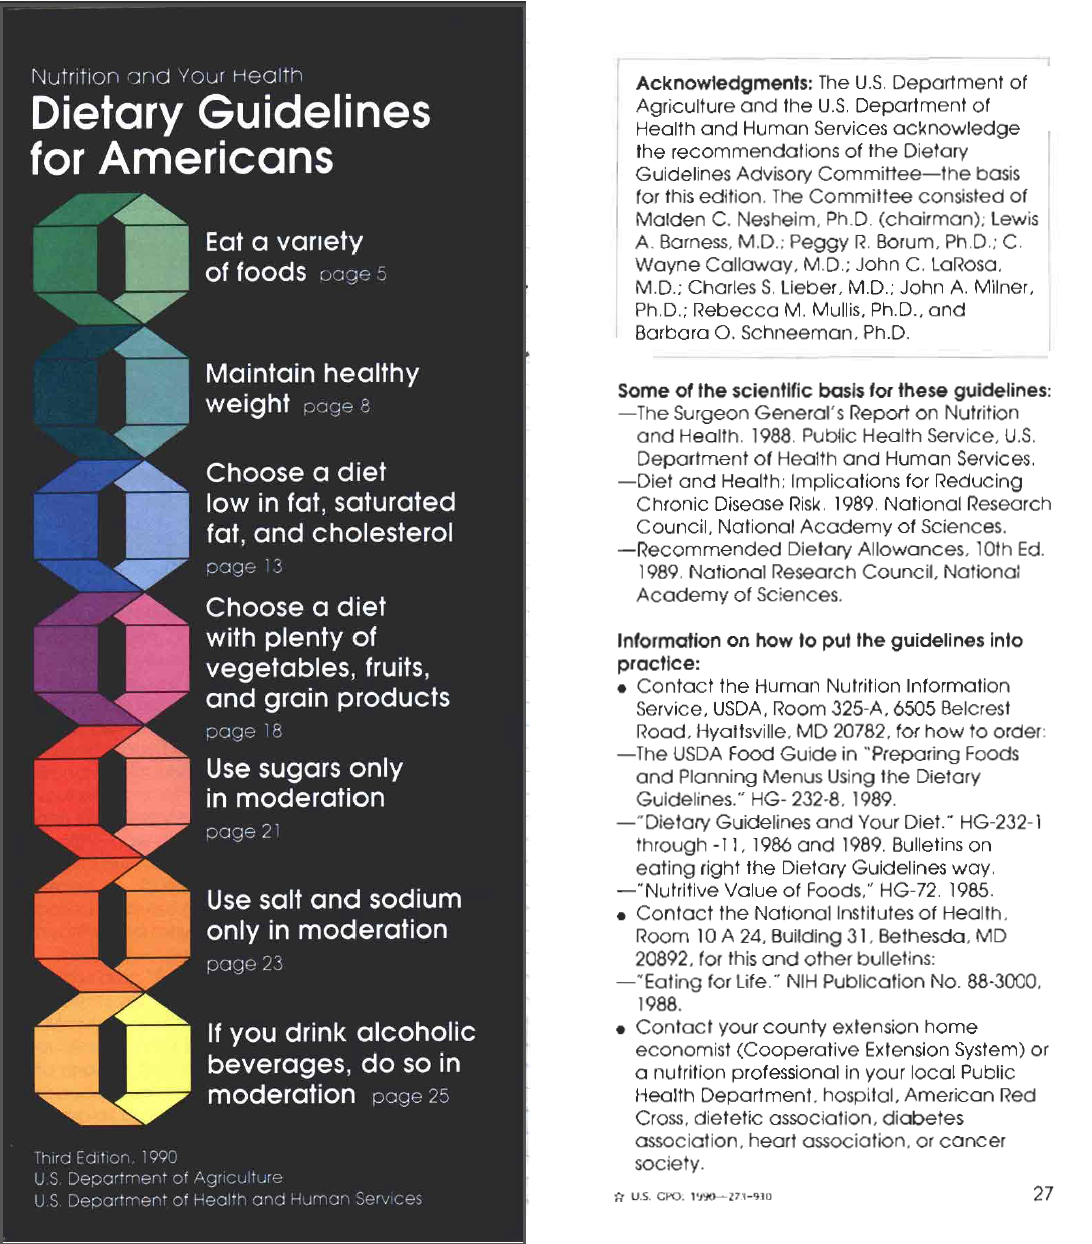 dietary guidelines for fat intake